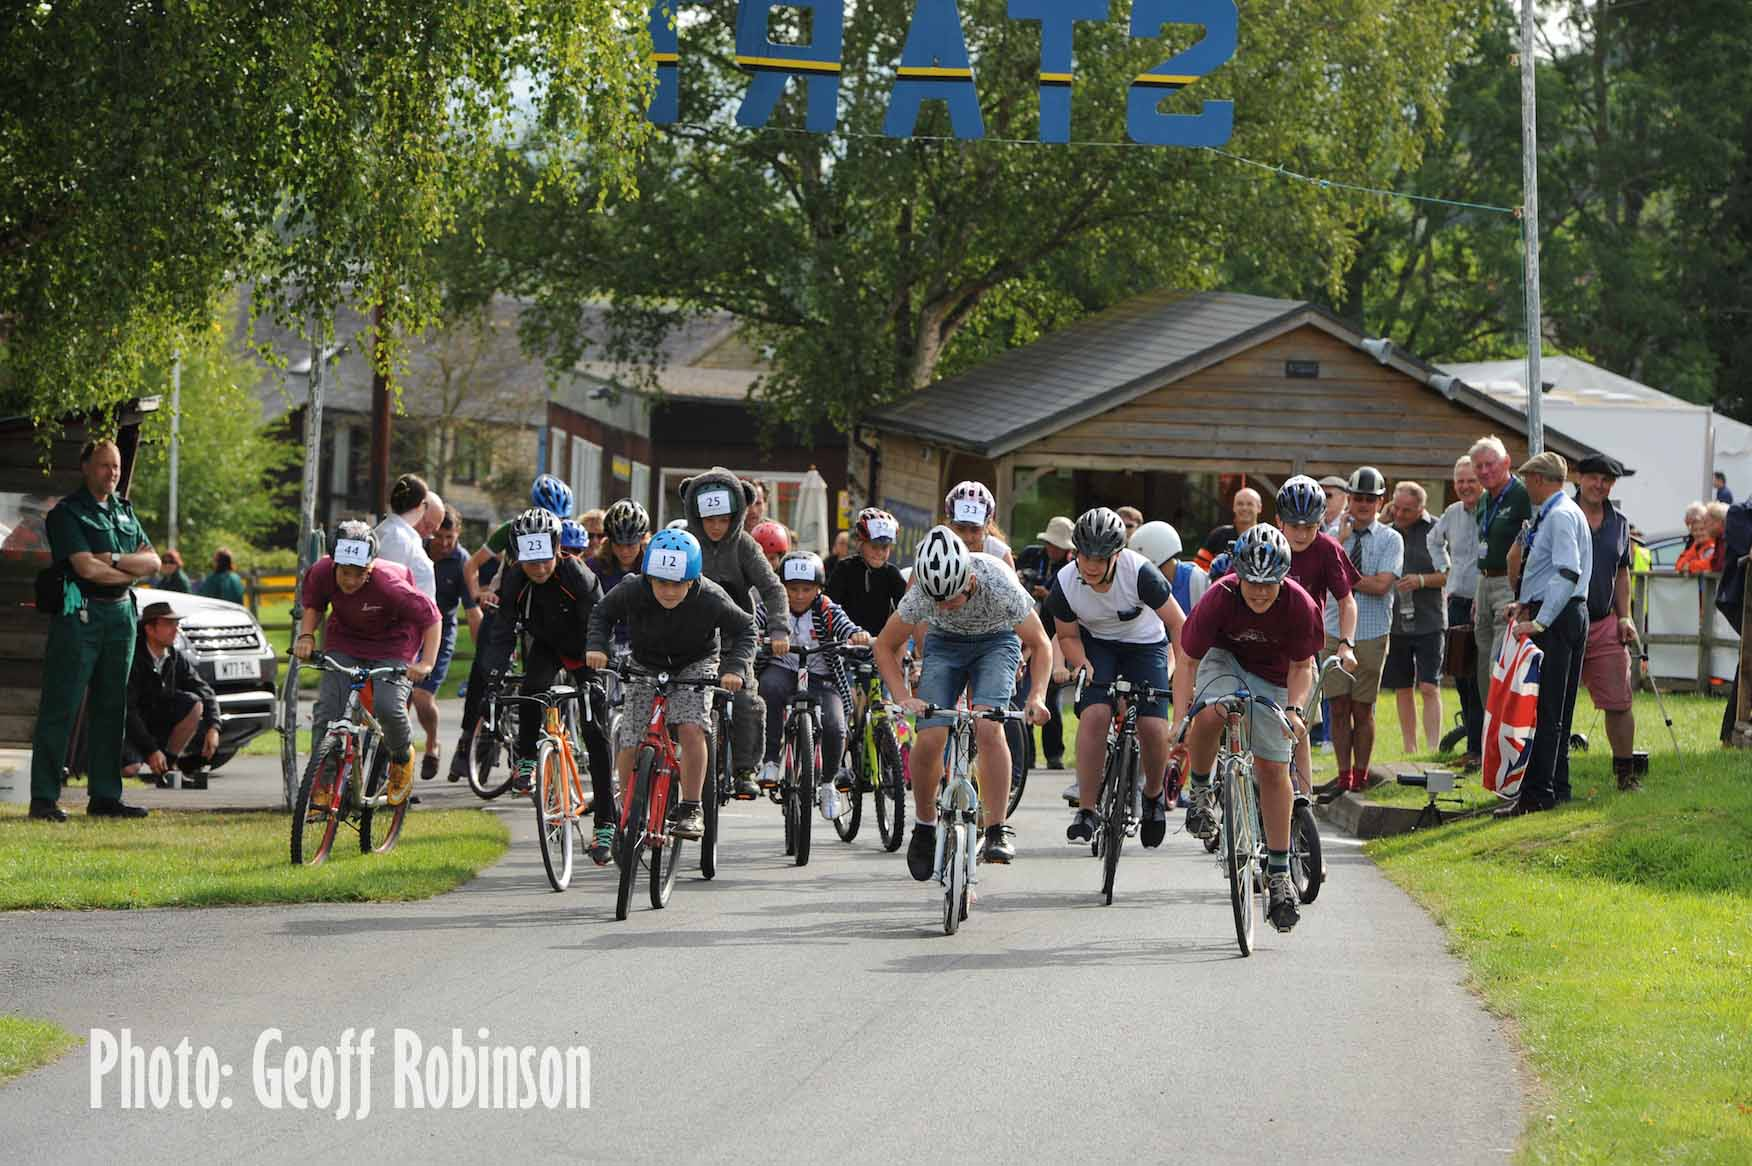 VSCC Prescott Bicycle Races and 5th Annual Pedal-Car Grand Prix – Sunday 7 August cover